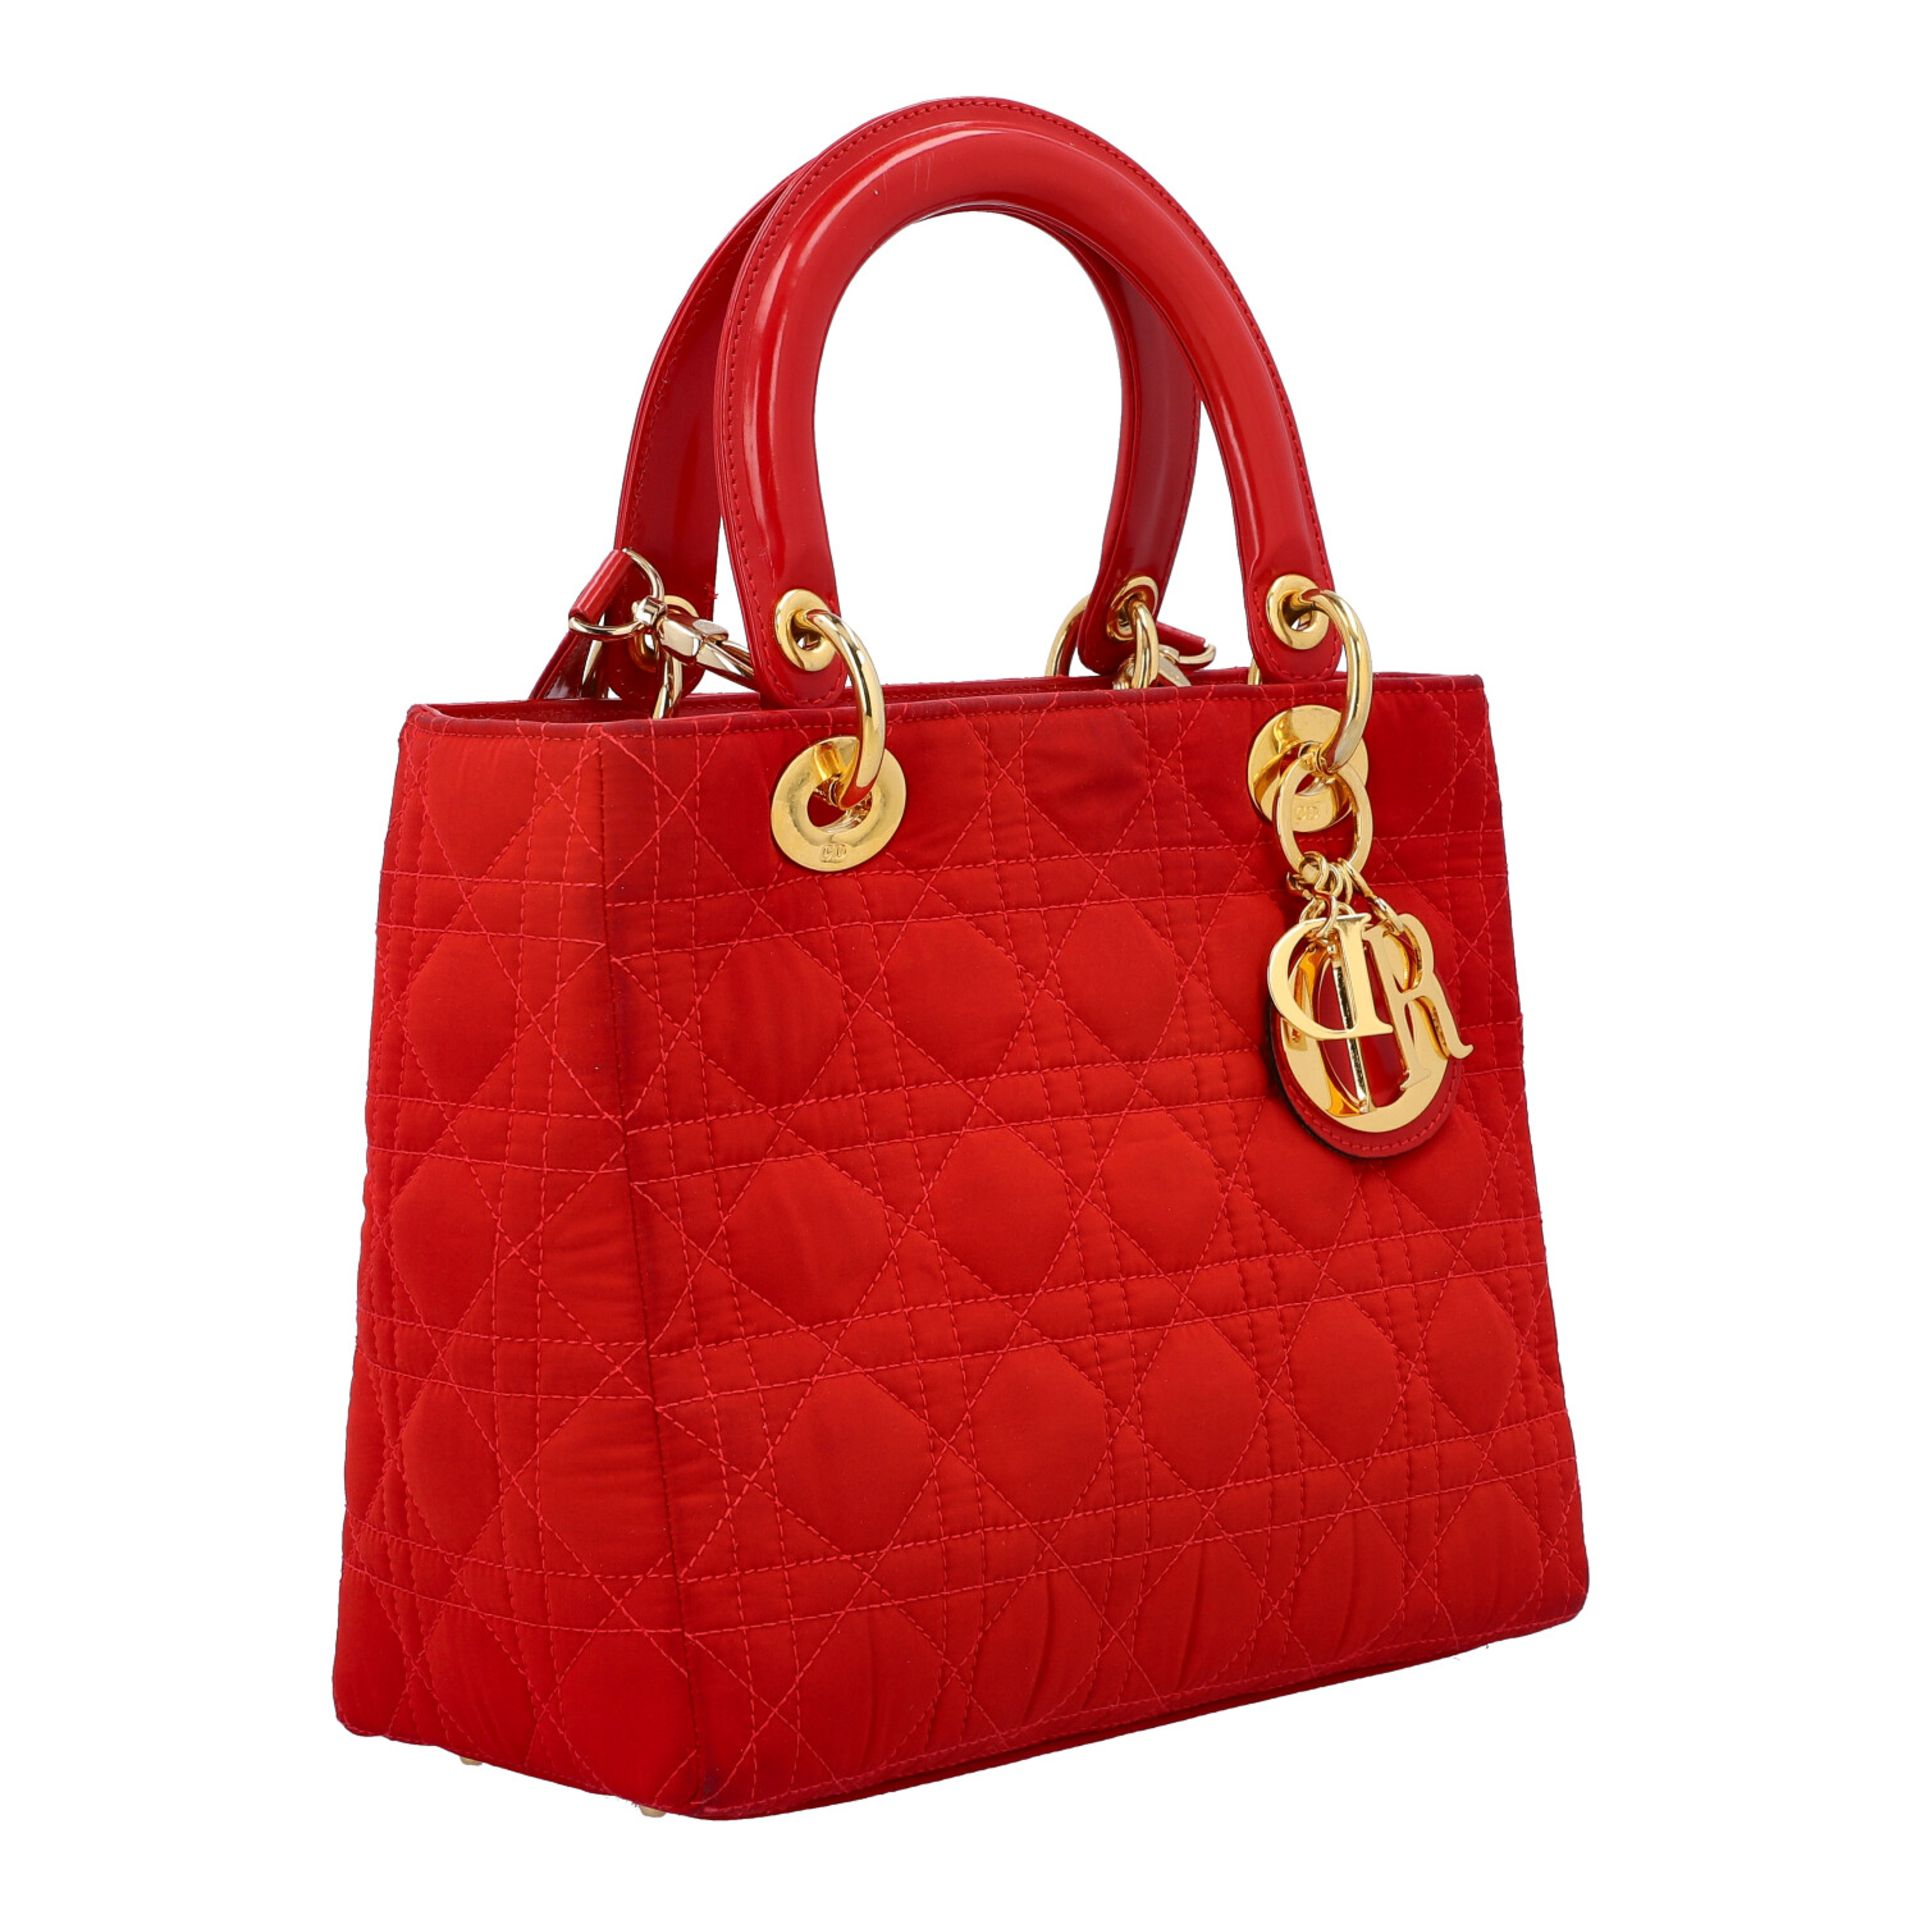 """CHRISTIAN DIOR Henkeltasche """"LADY DIOR"""", Koll.: 1997. Textil in Rot mit Cannage Steppu - Image 2 of 8"""